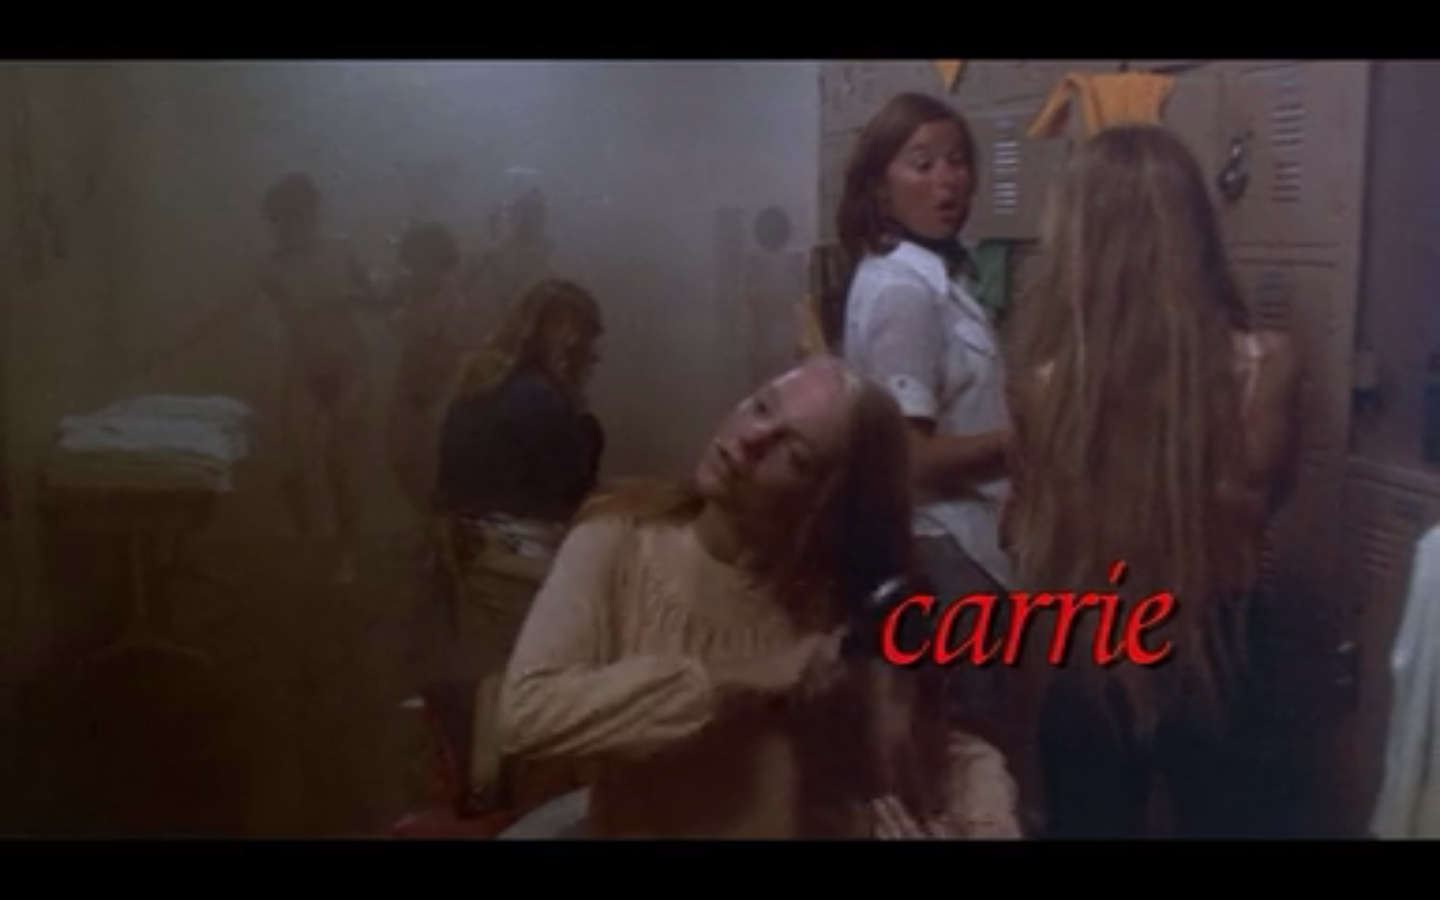 Carrie Locker Room Scene Google Search Stephen King Carrie Movie Perfect Movie